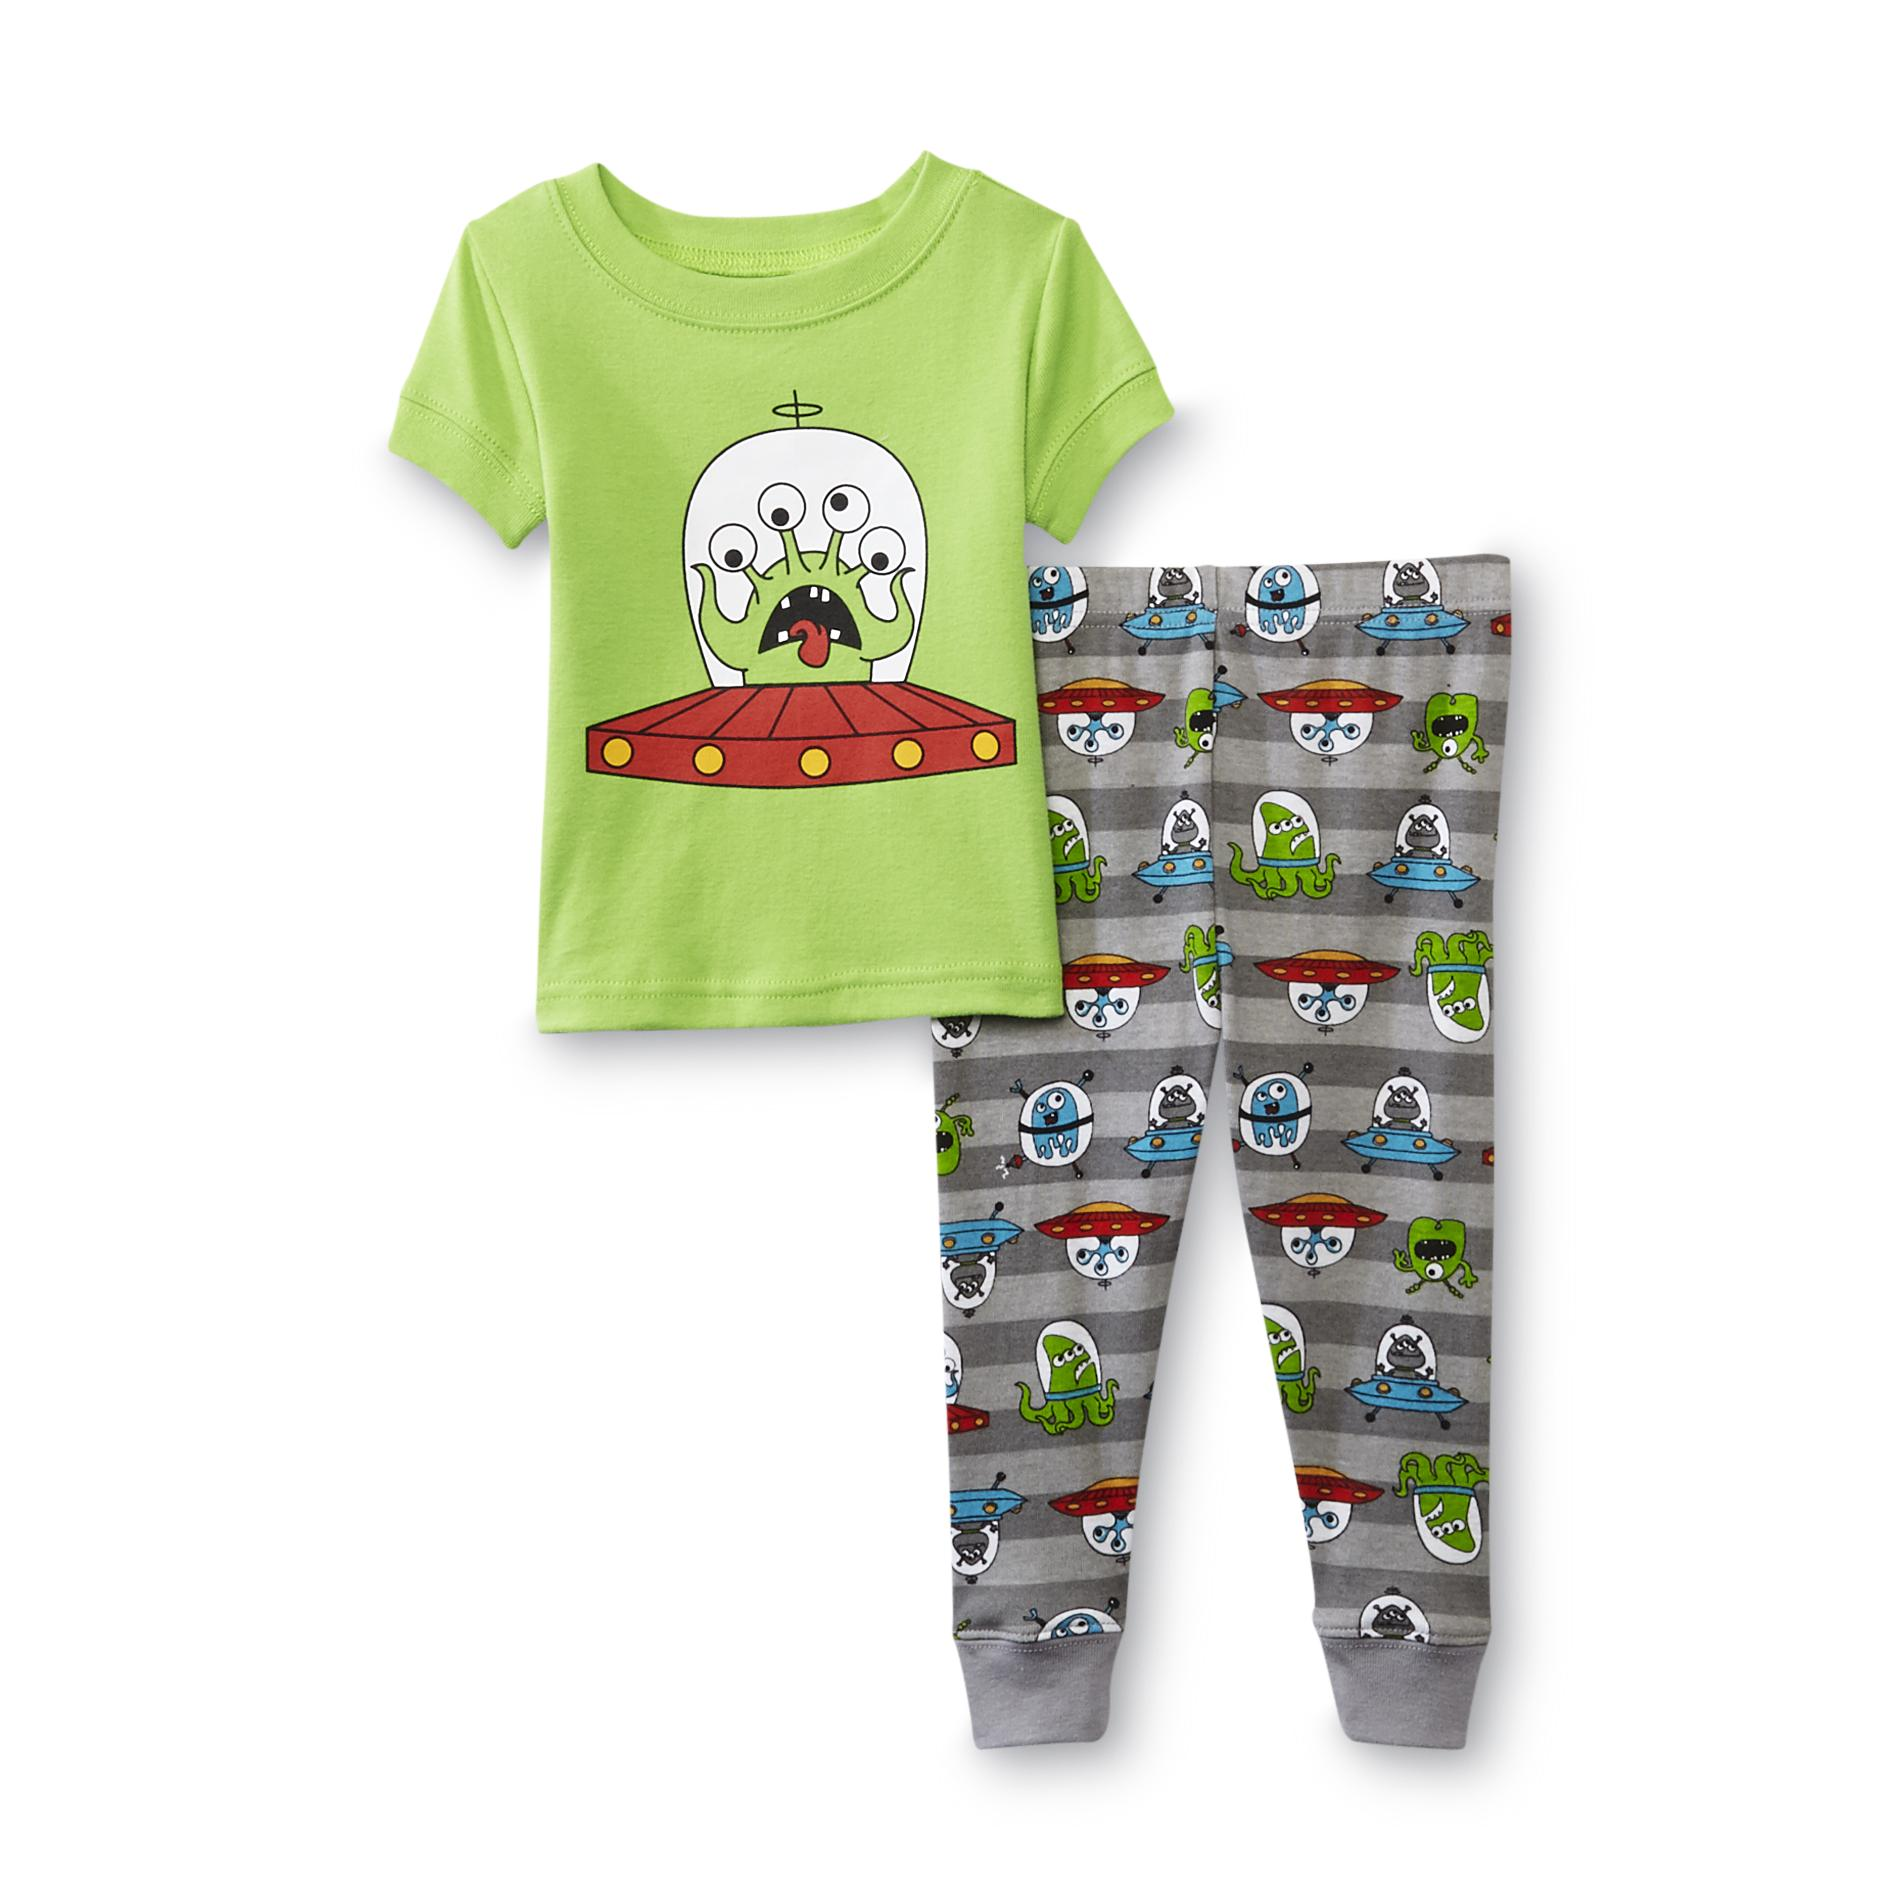 Joe Boxer  Infant & Toddler Boy's Pajama